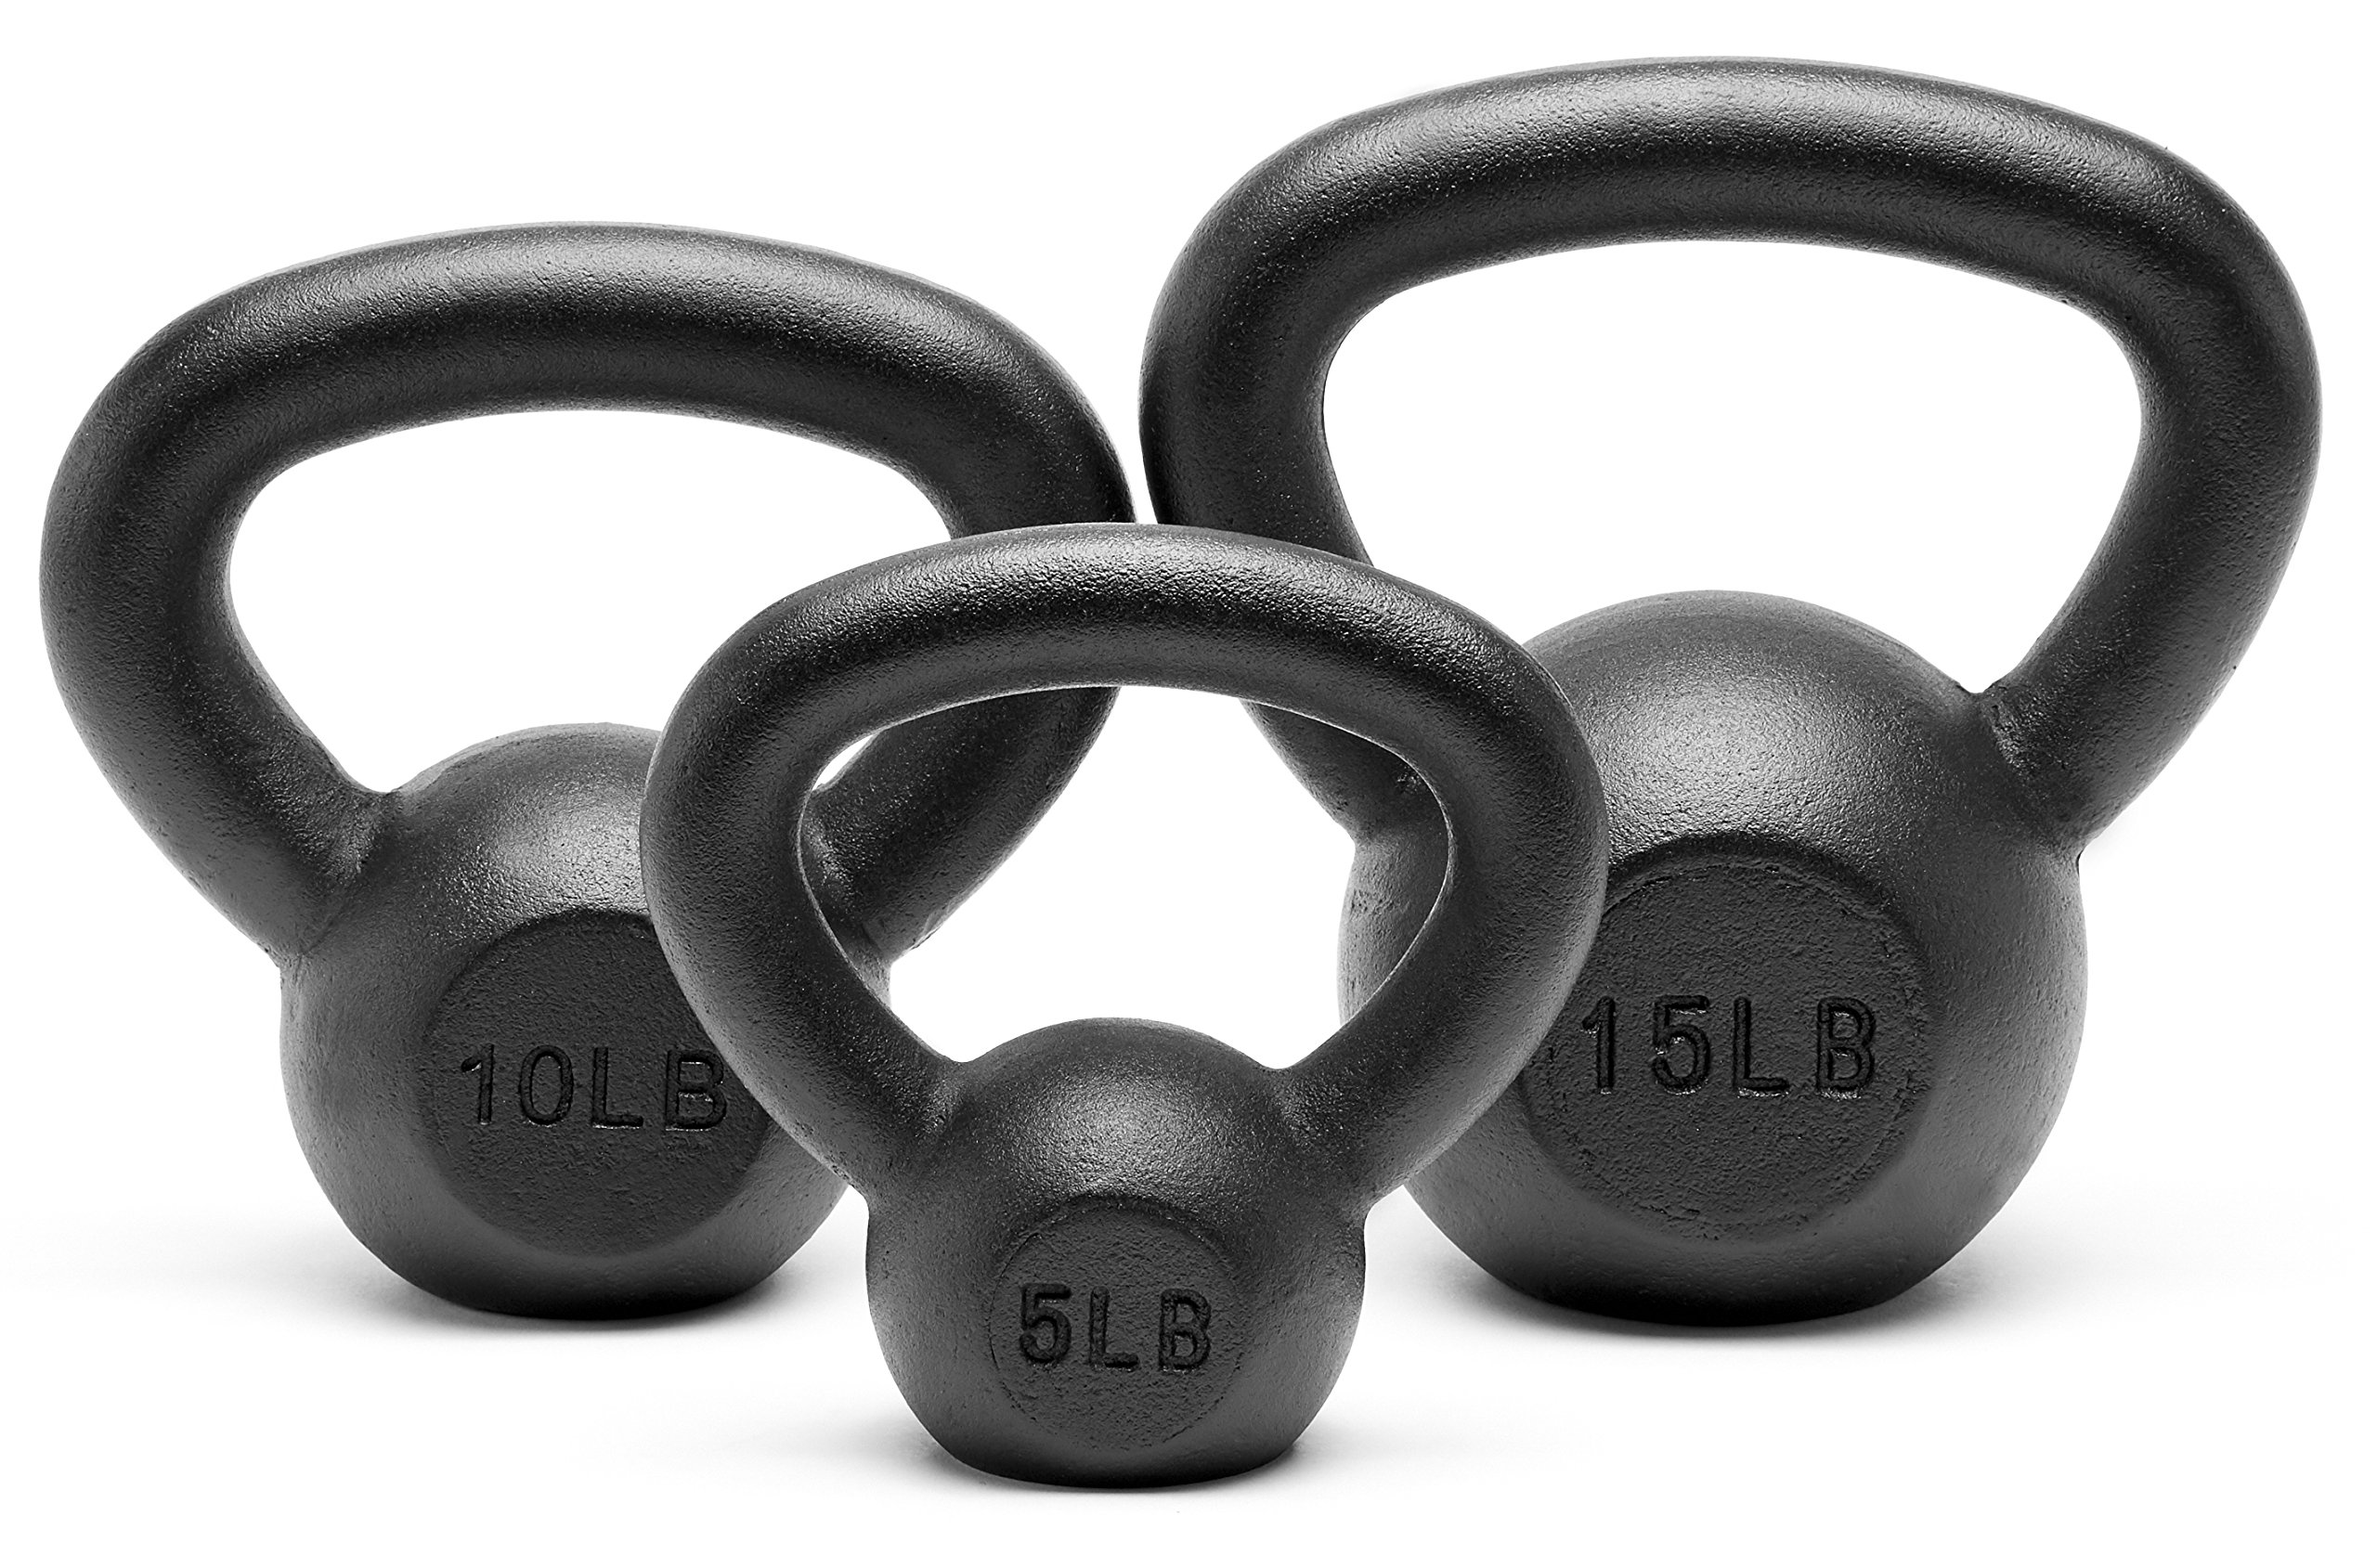 Unipack Powder Coated Solid Cast Iron Kettlebell Weights Set- (5+10+15 lbs)